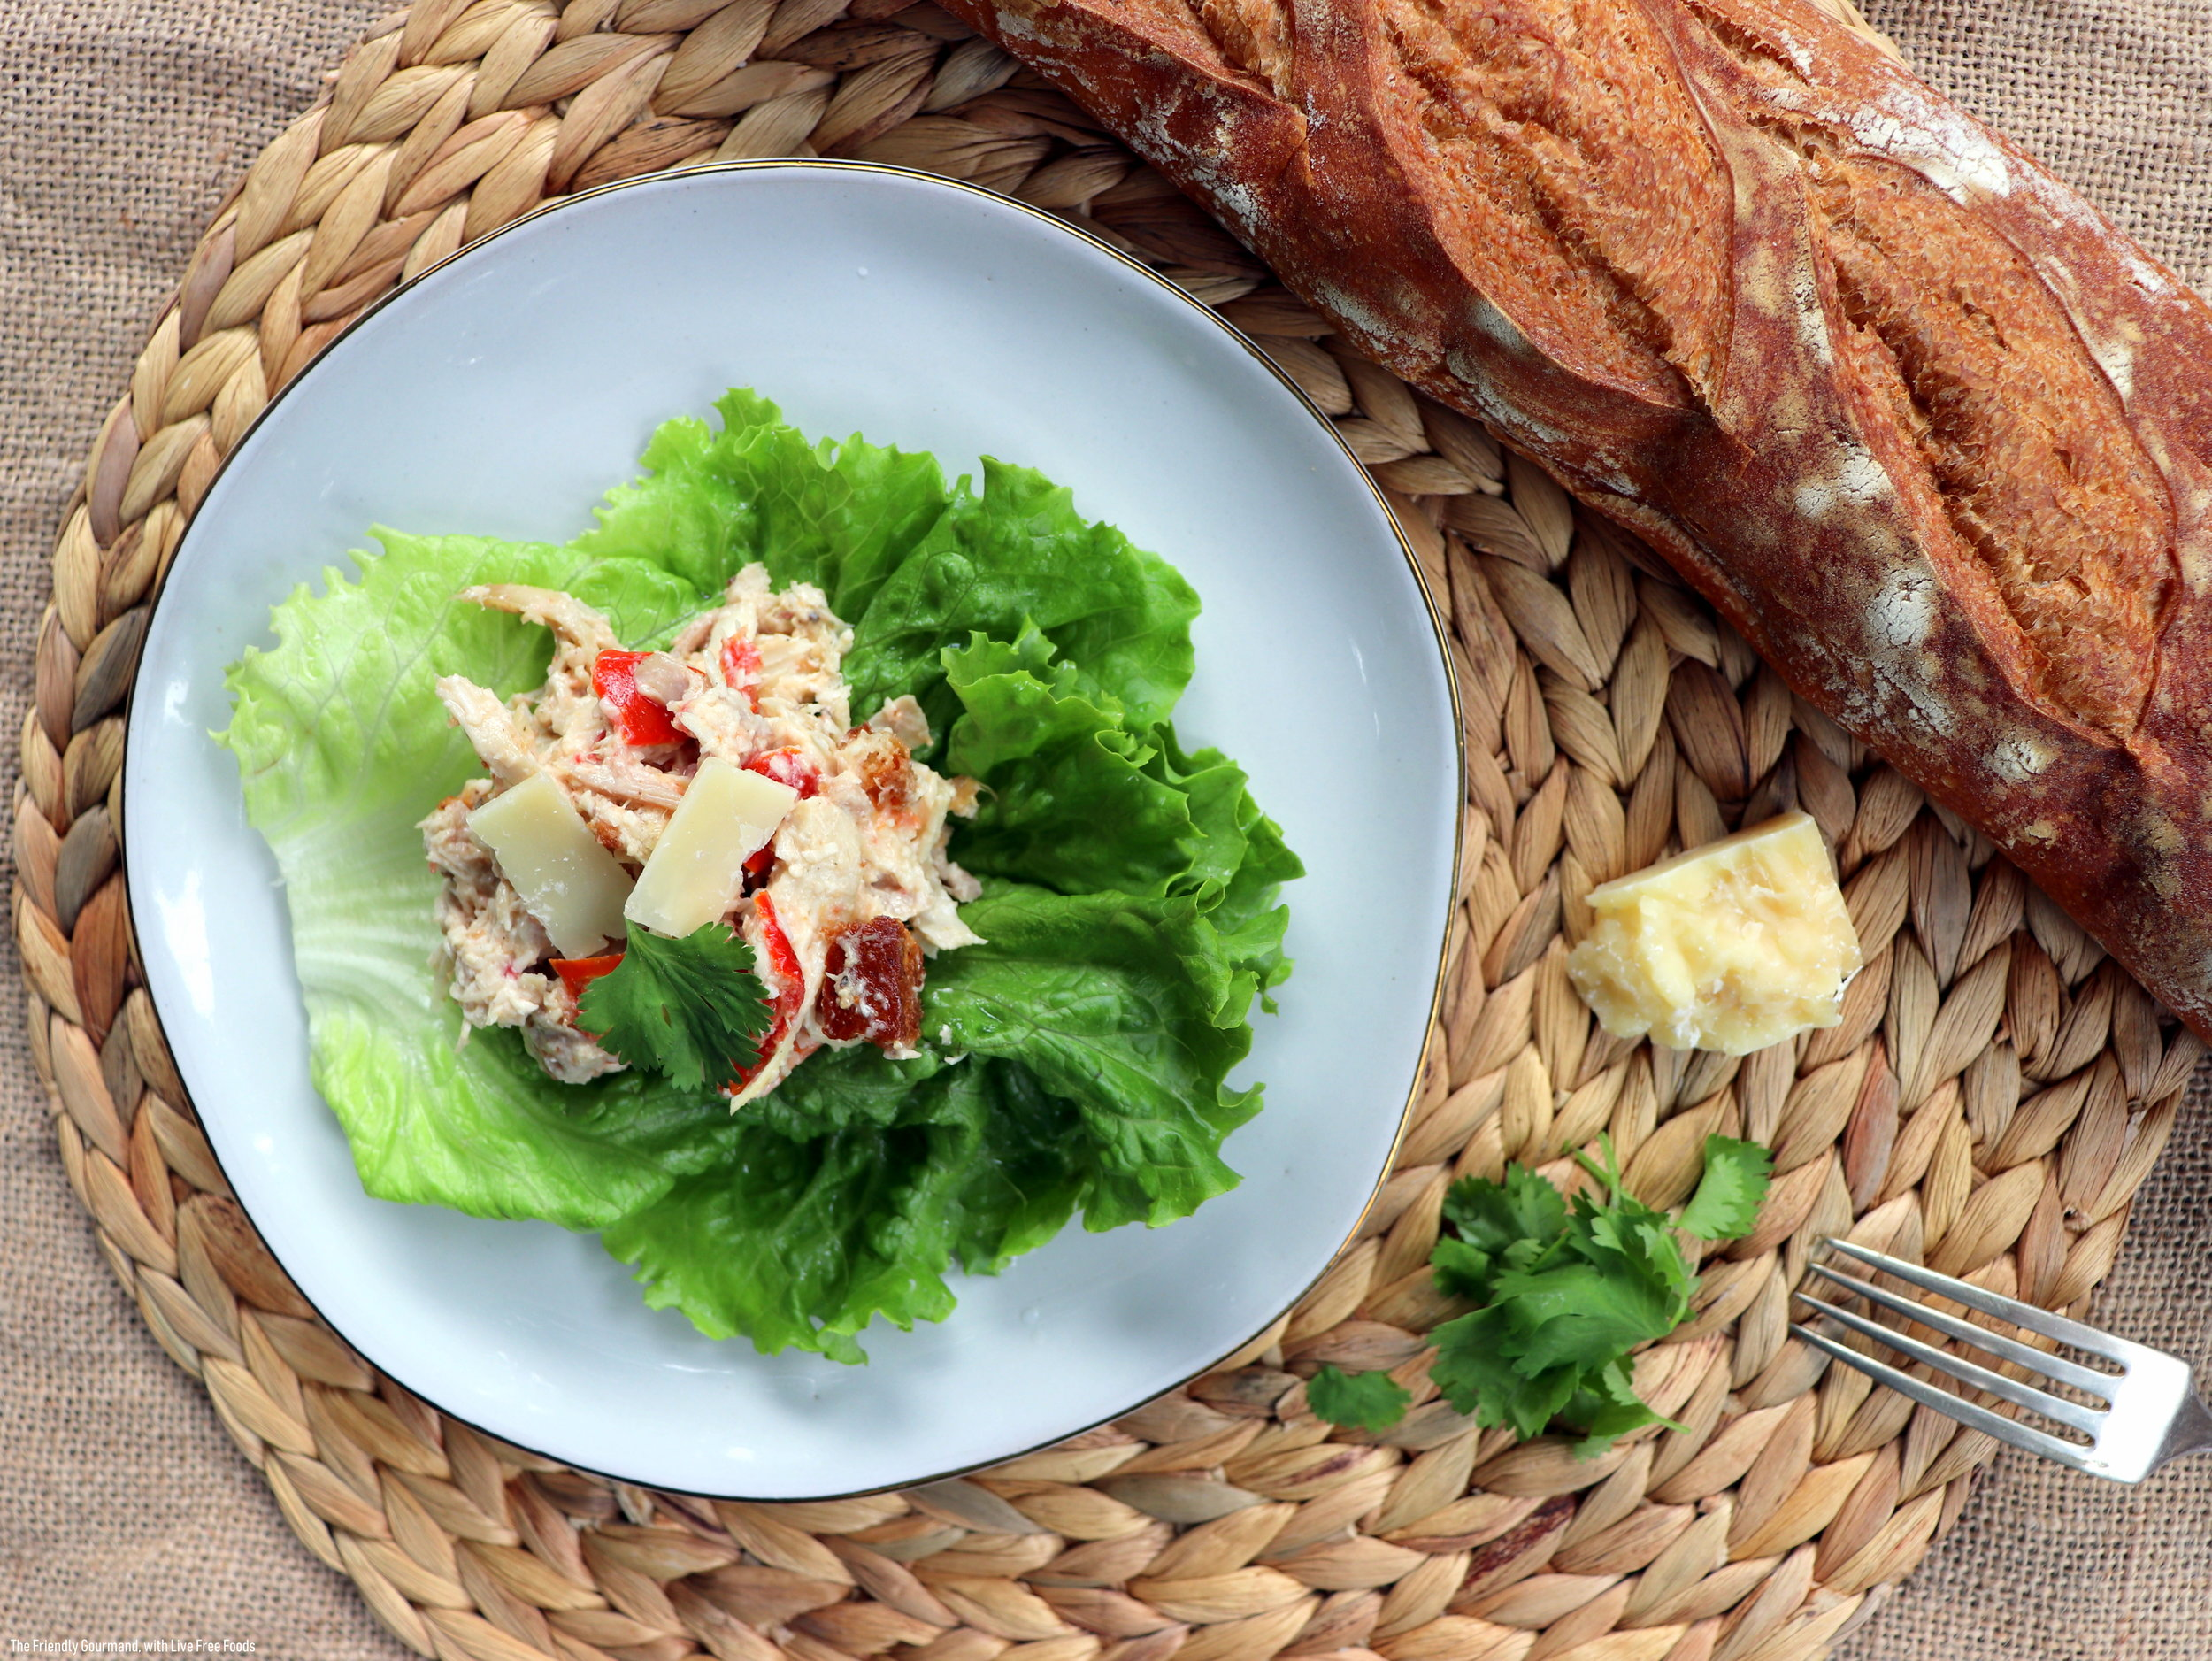 Chicken Caesar Salad Cups with Live Free Foods & The Friendly Gourmand - Low FODMAP Gluten Free